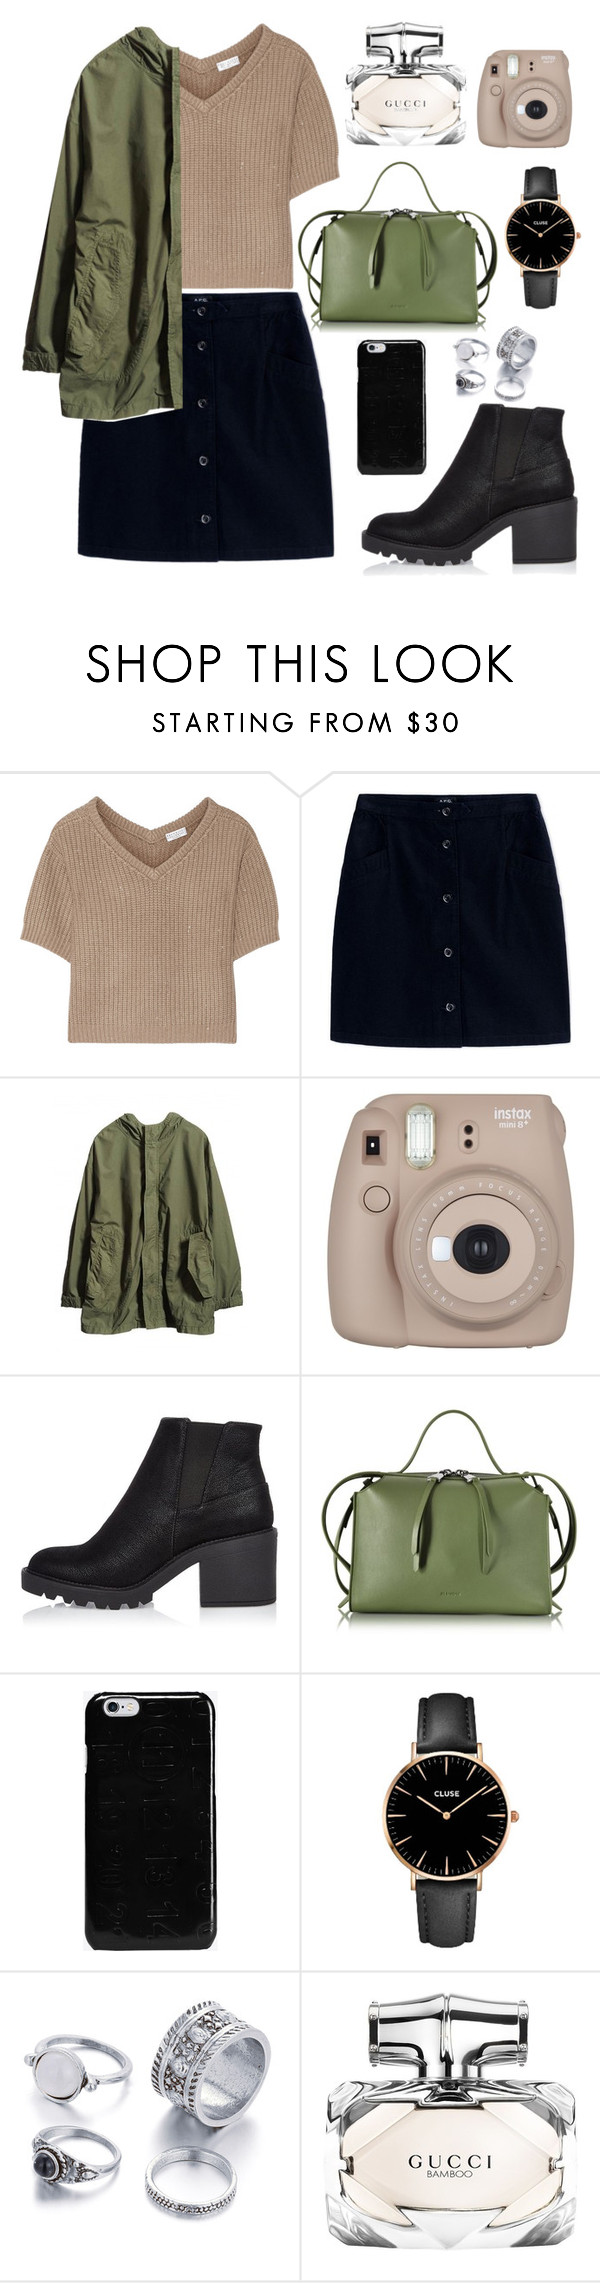 """Untitled #20"" by peachiez ❤ liked on Polyvore featuring Brunello Cucinelli, A.P.C., Fujifilm, River Island, Jil Sander, Maison Margiela, CLUSE and Gucci"